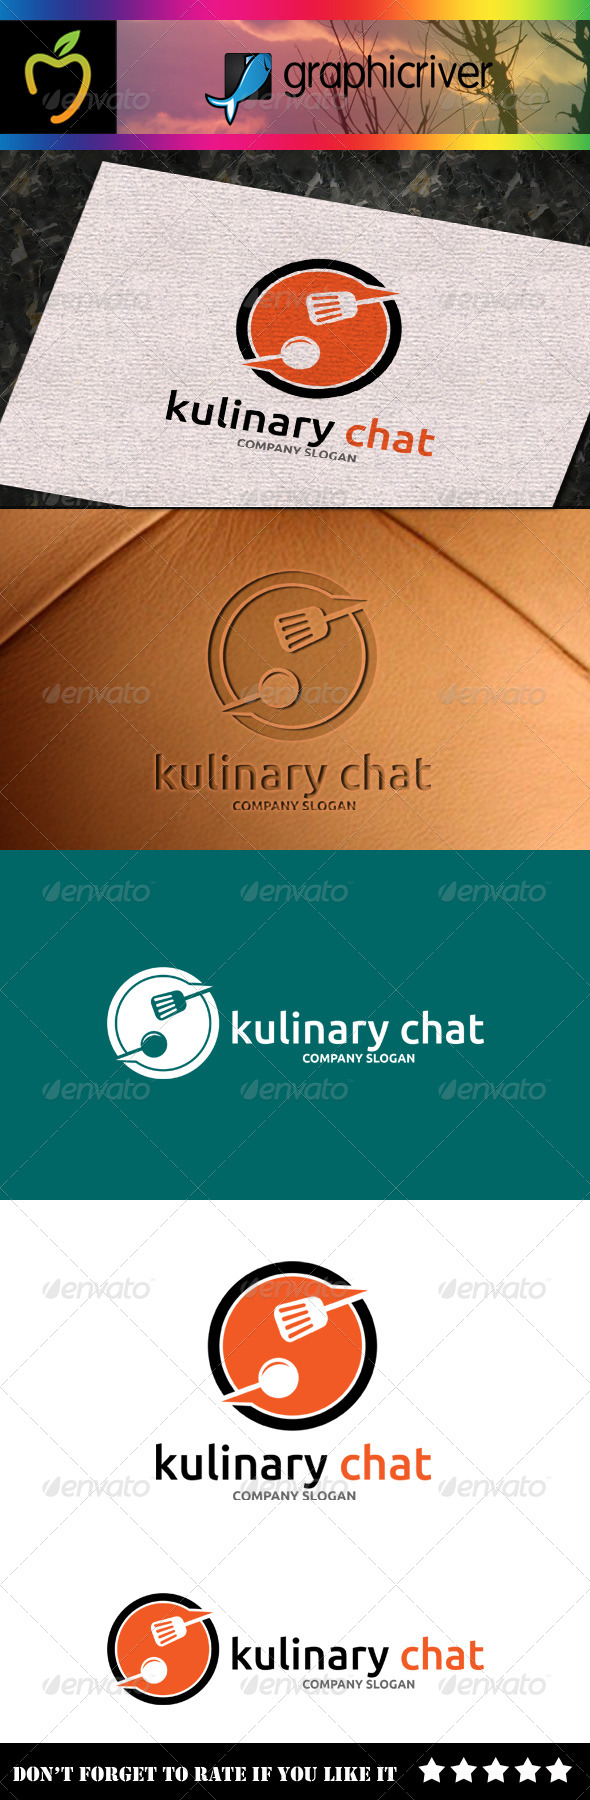 GraphicRiver Kulinary Chat Logo 7790282